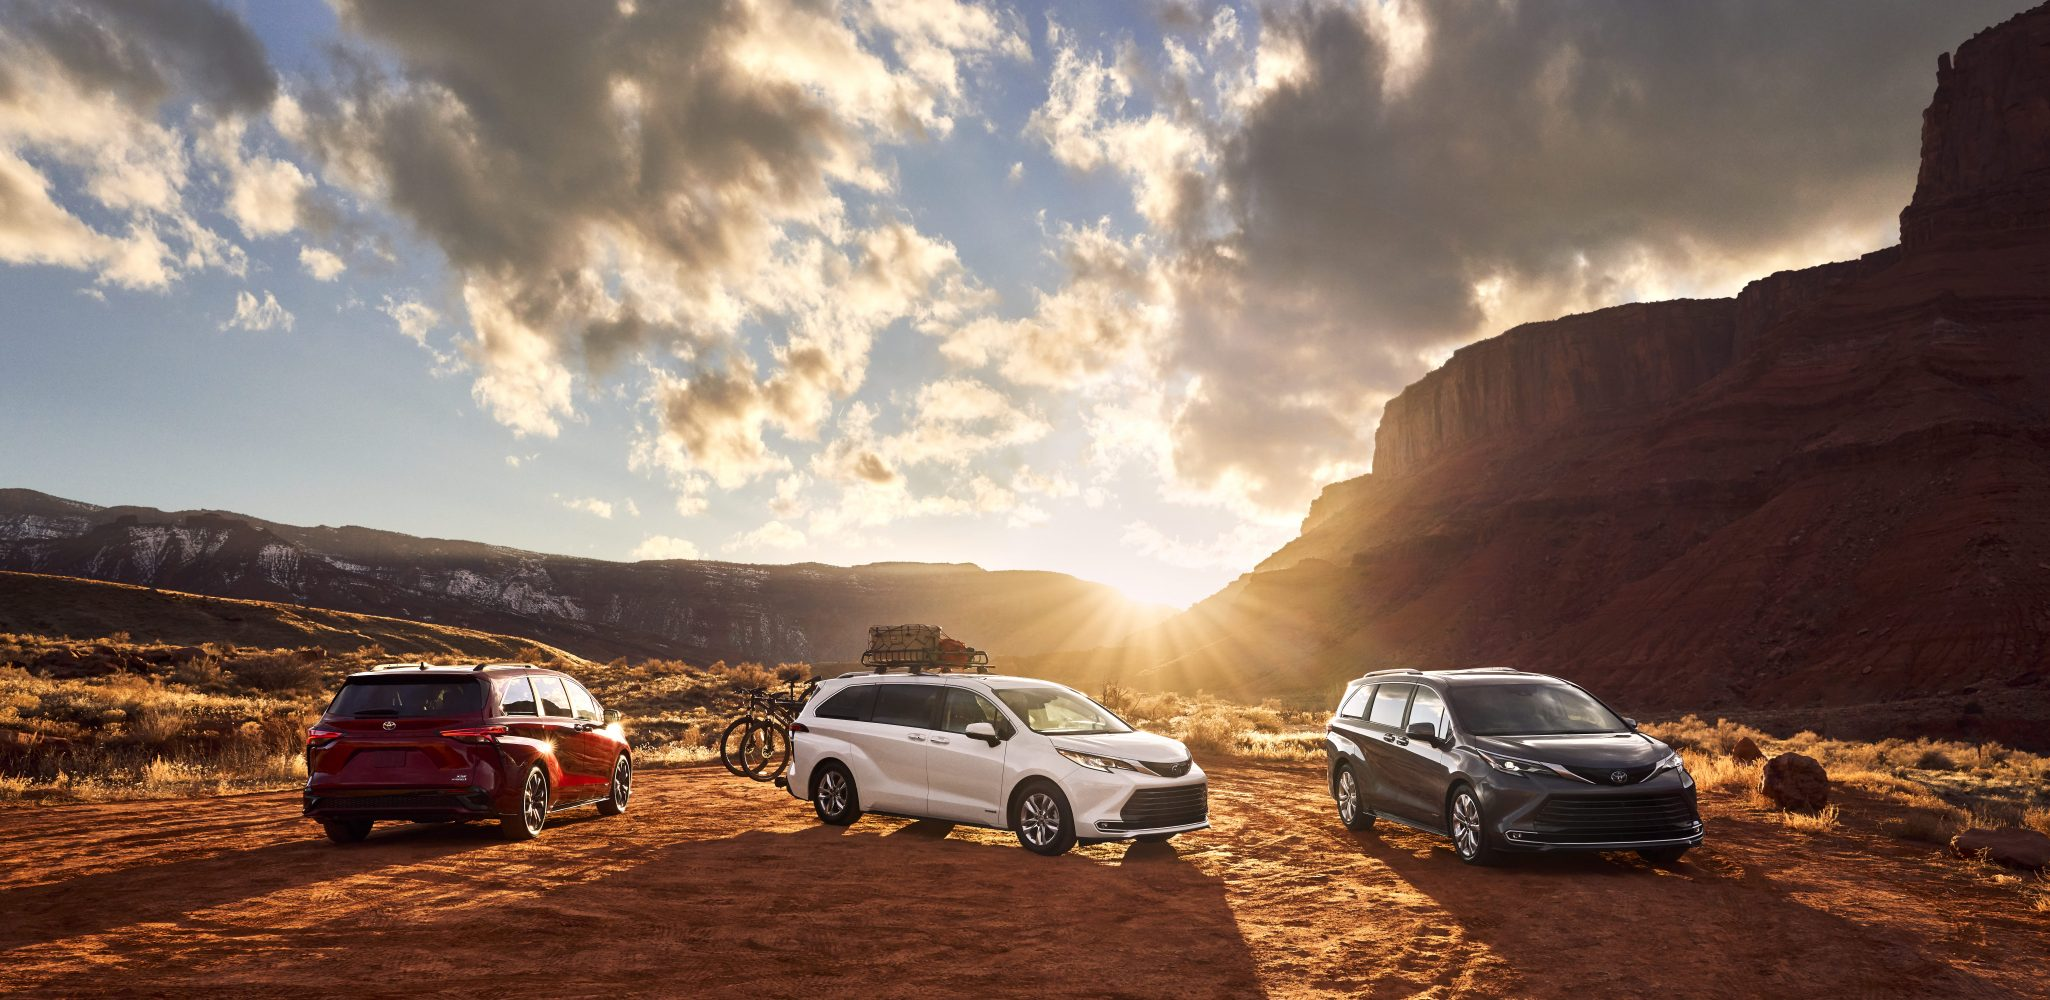 6 Things To Love About the 2021 Toyota Sienna